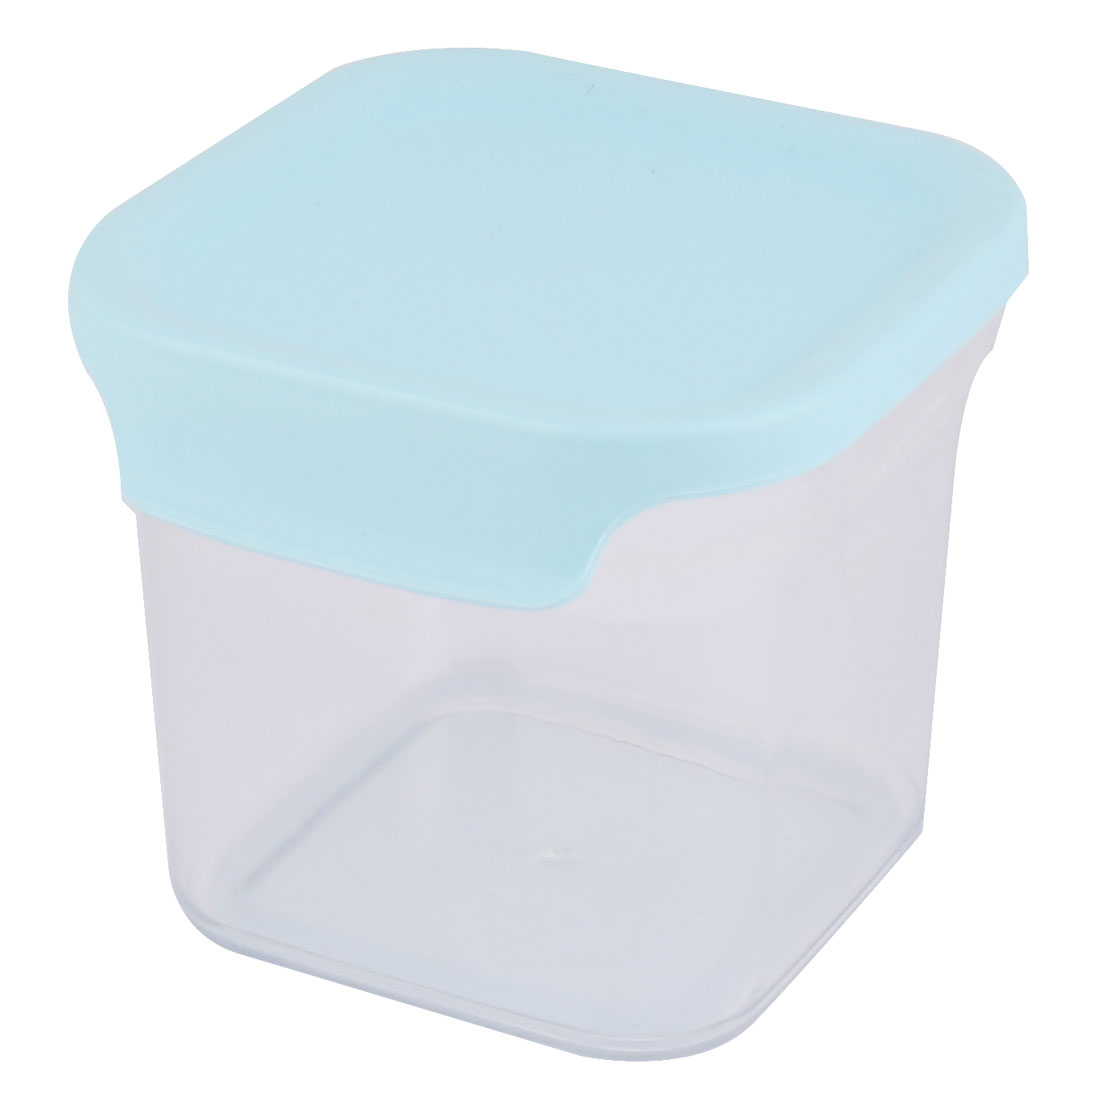 School Apartment Plastic Airtight Food Suger Snacks Storage Box Container Blue 650ML